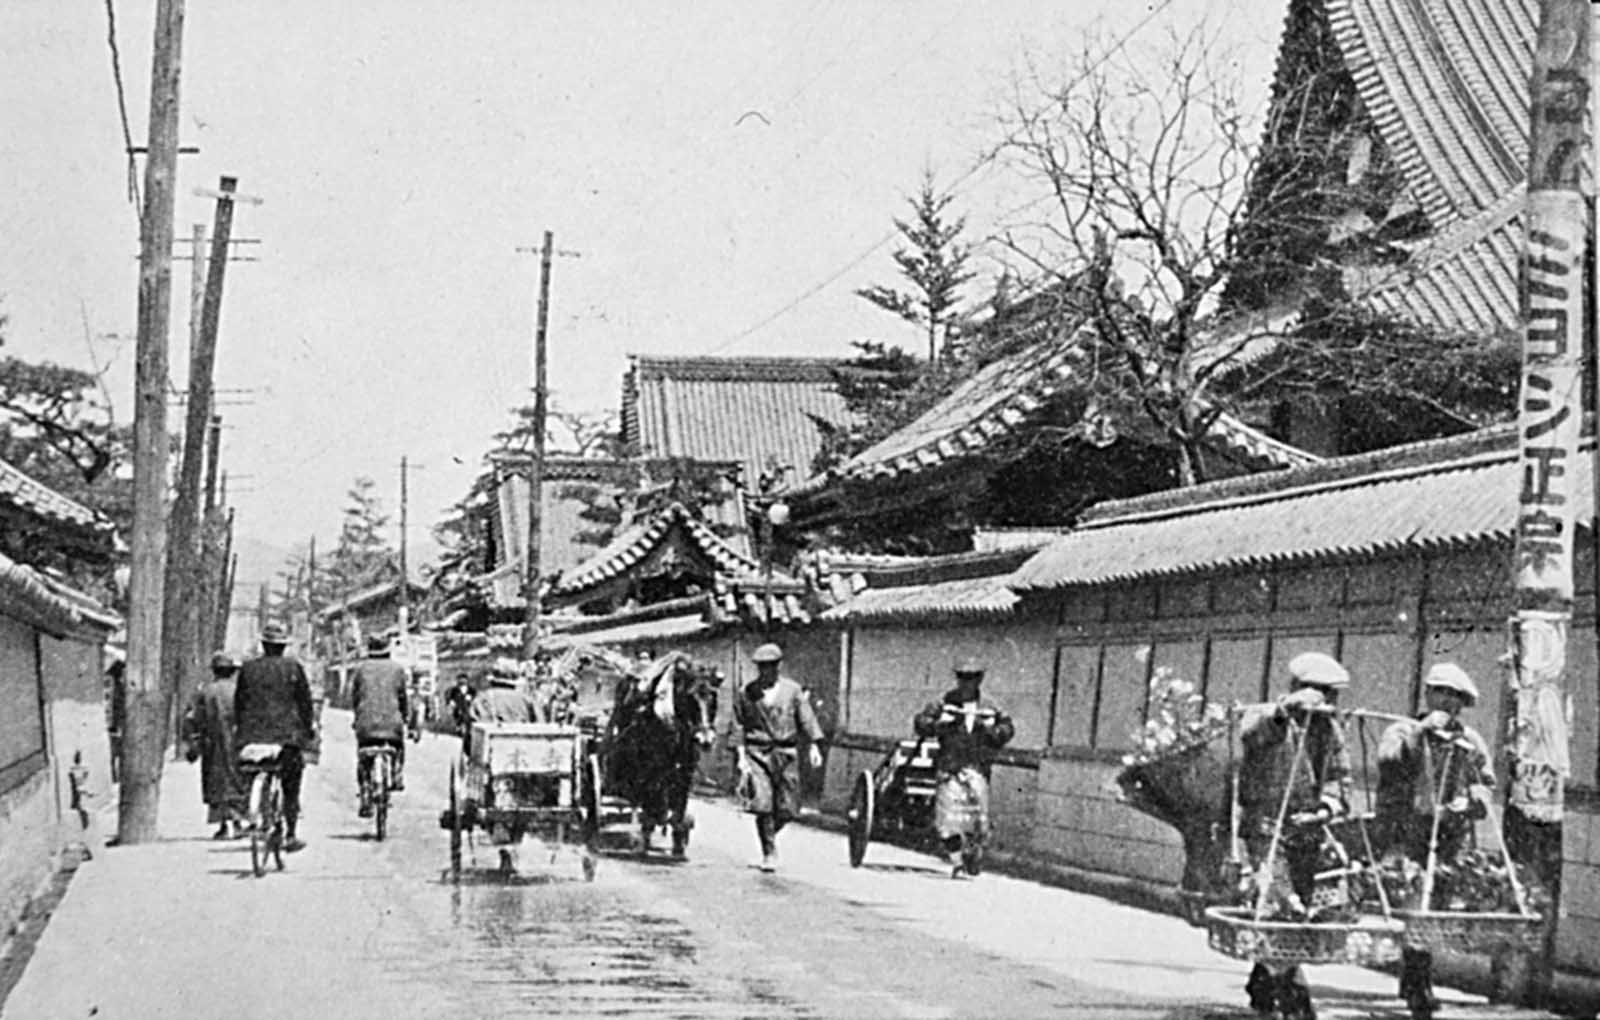 Looking northeast along Teramachi, the Street of Temples, in pre-war Hiroshima. This district was completely ruined.